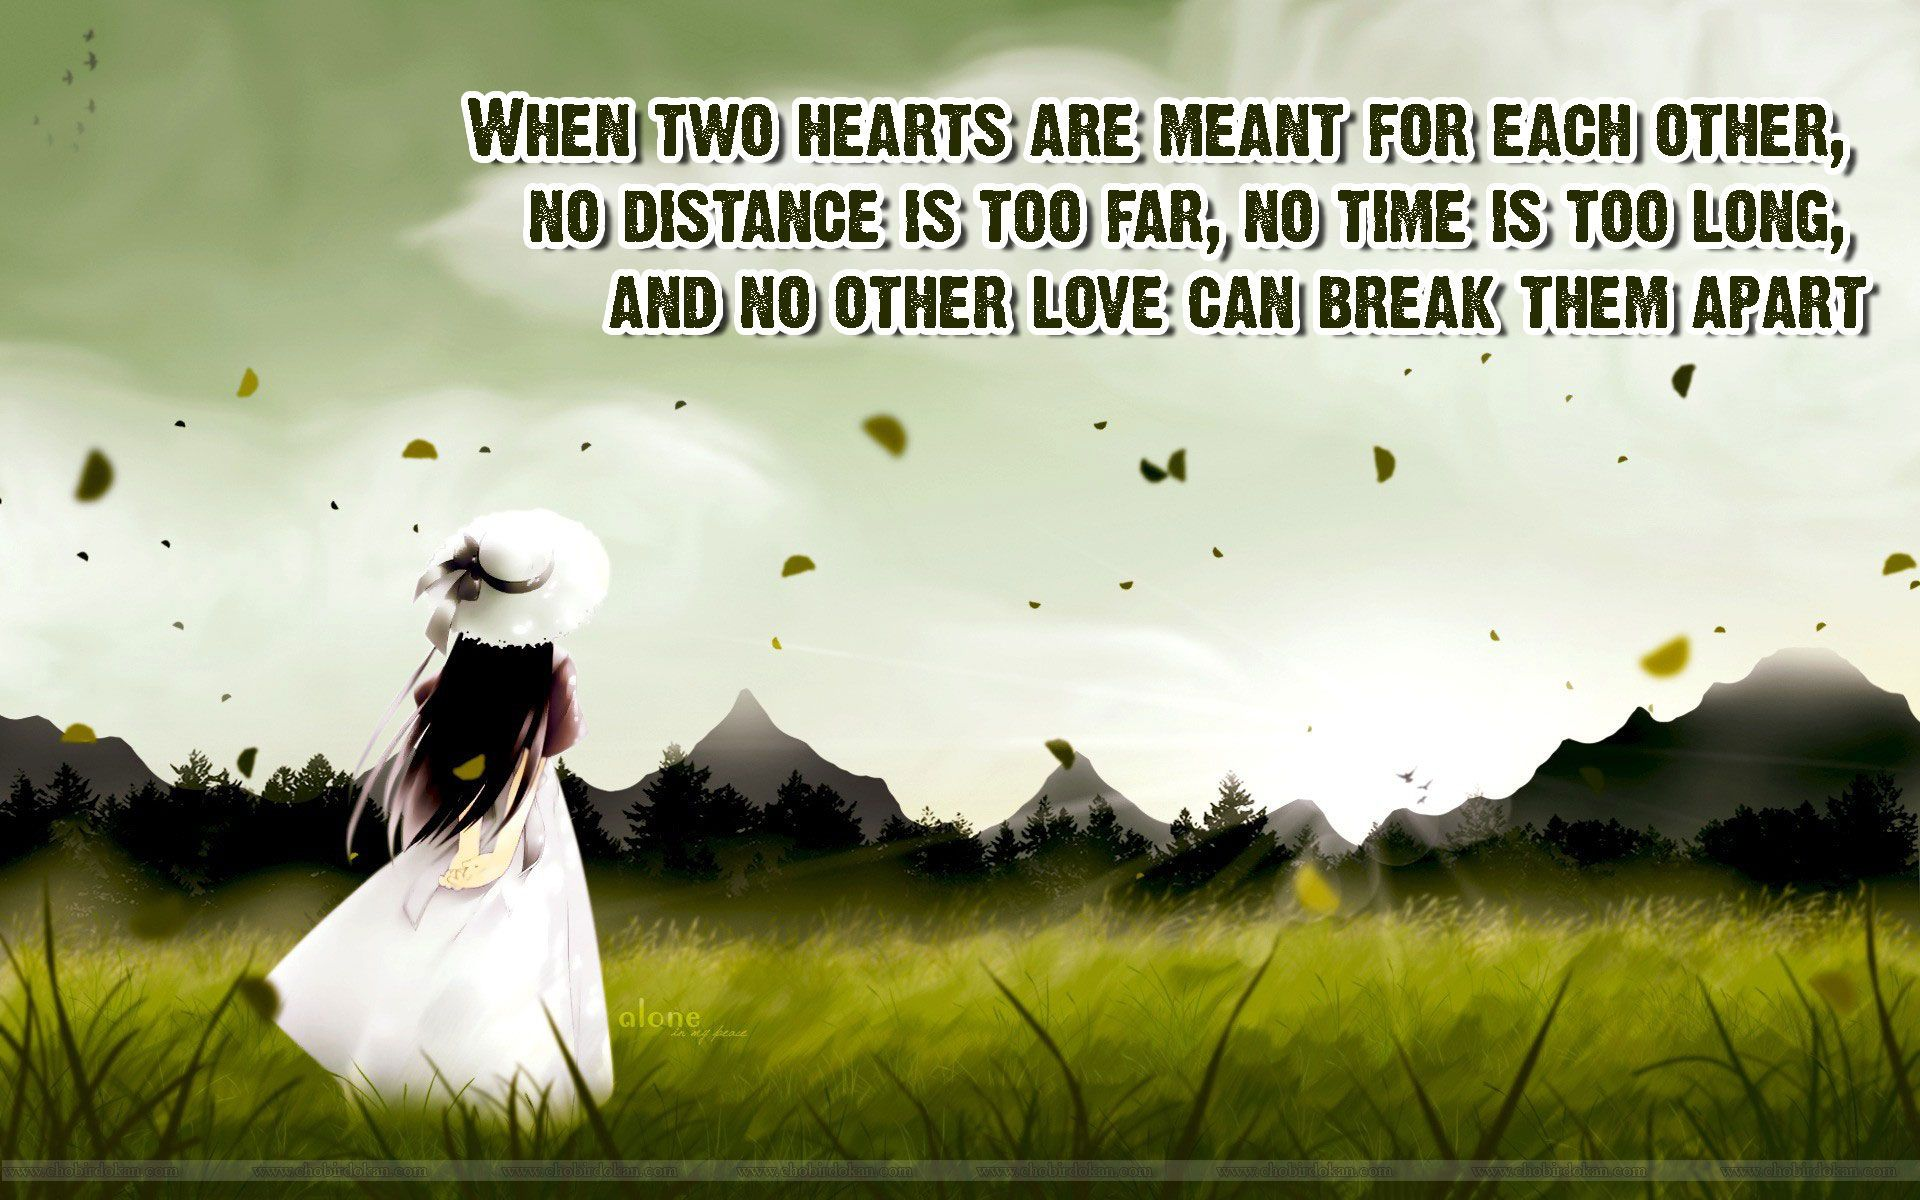 Superior Cute Long Distance Relationship Quotes With Images For Your  Girlfriend,boyfriend Or Family. Best HD Wallpapers Of Quotes About Long  Distance Relationship.